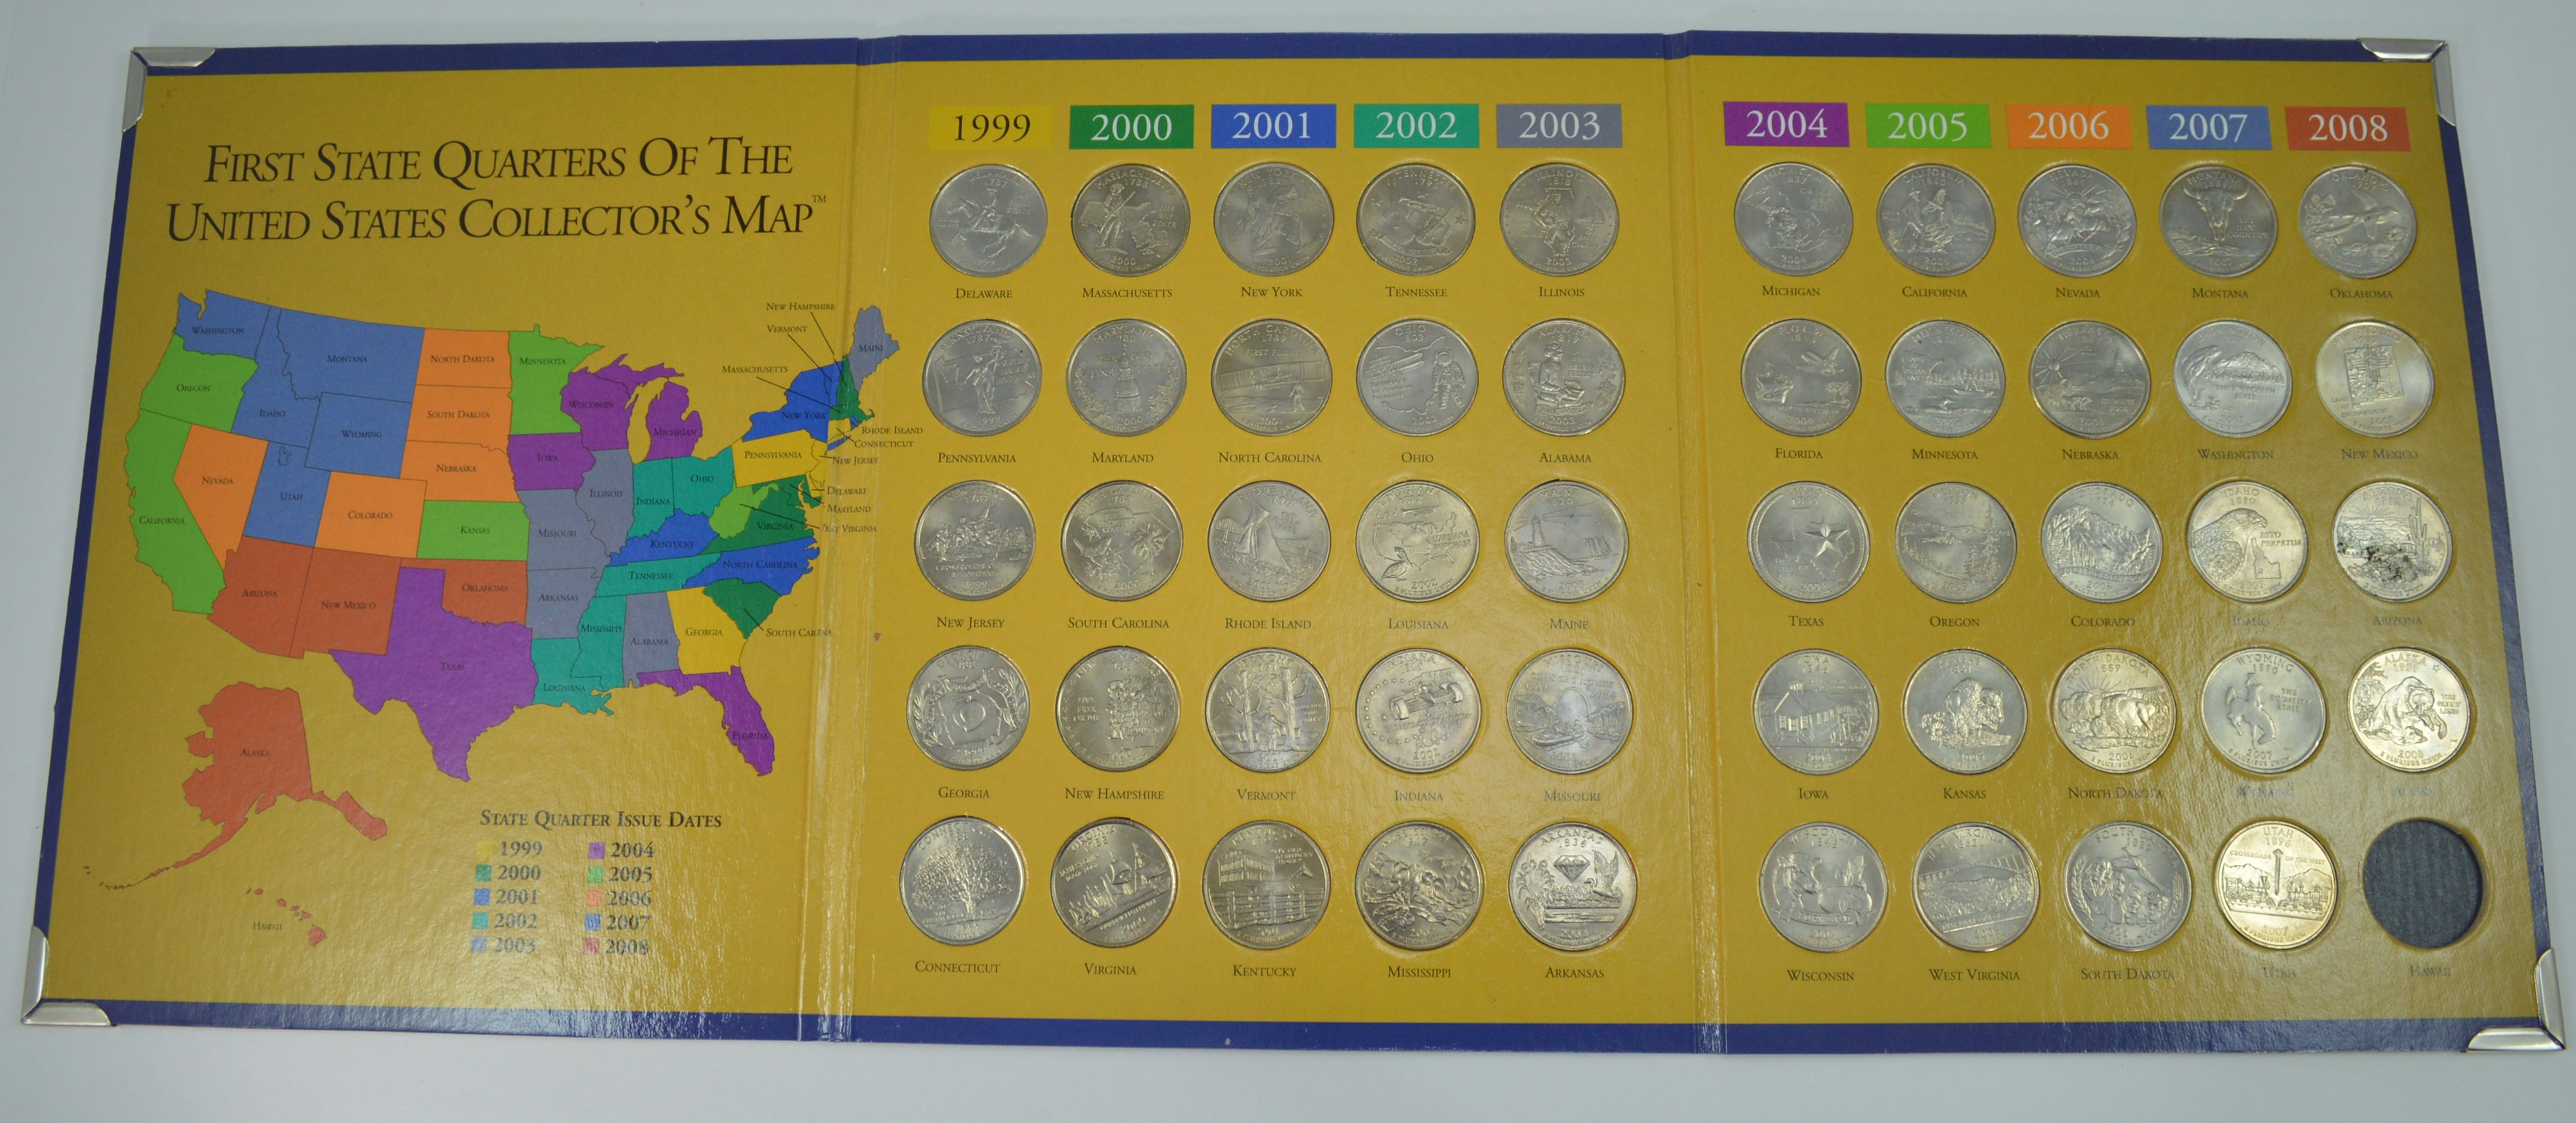 first state quarters of the united states collectors map First State Quarters of The United States Collector's Map 1999